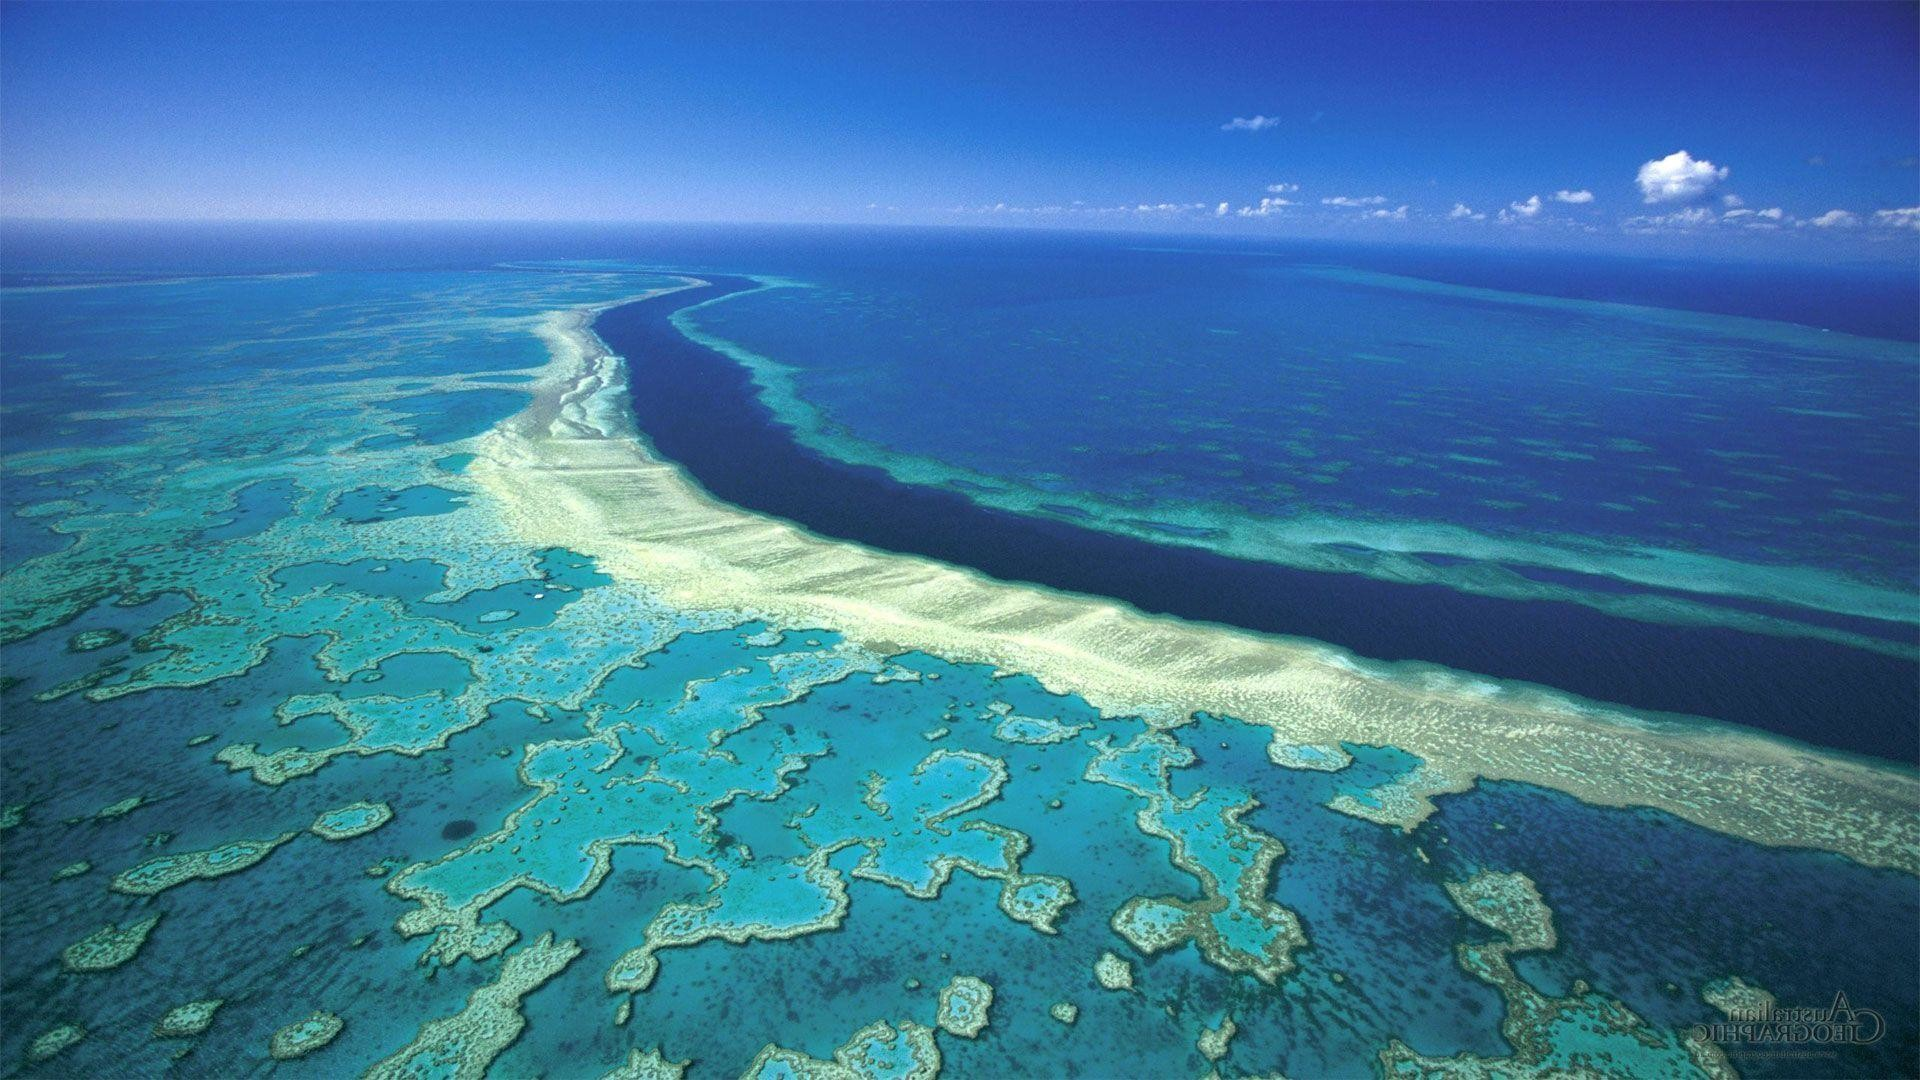 1920x1080 Great Barrier Reef Wallpapers iphone | Pinter Wallpapers